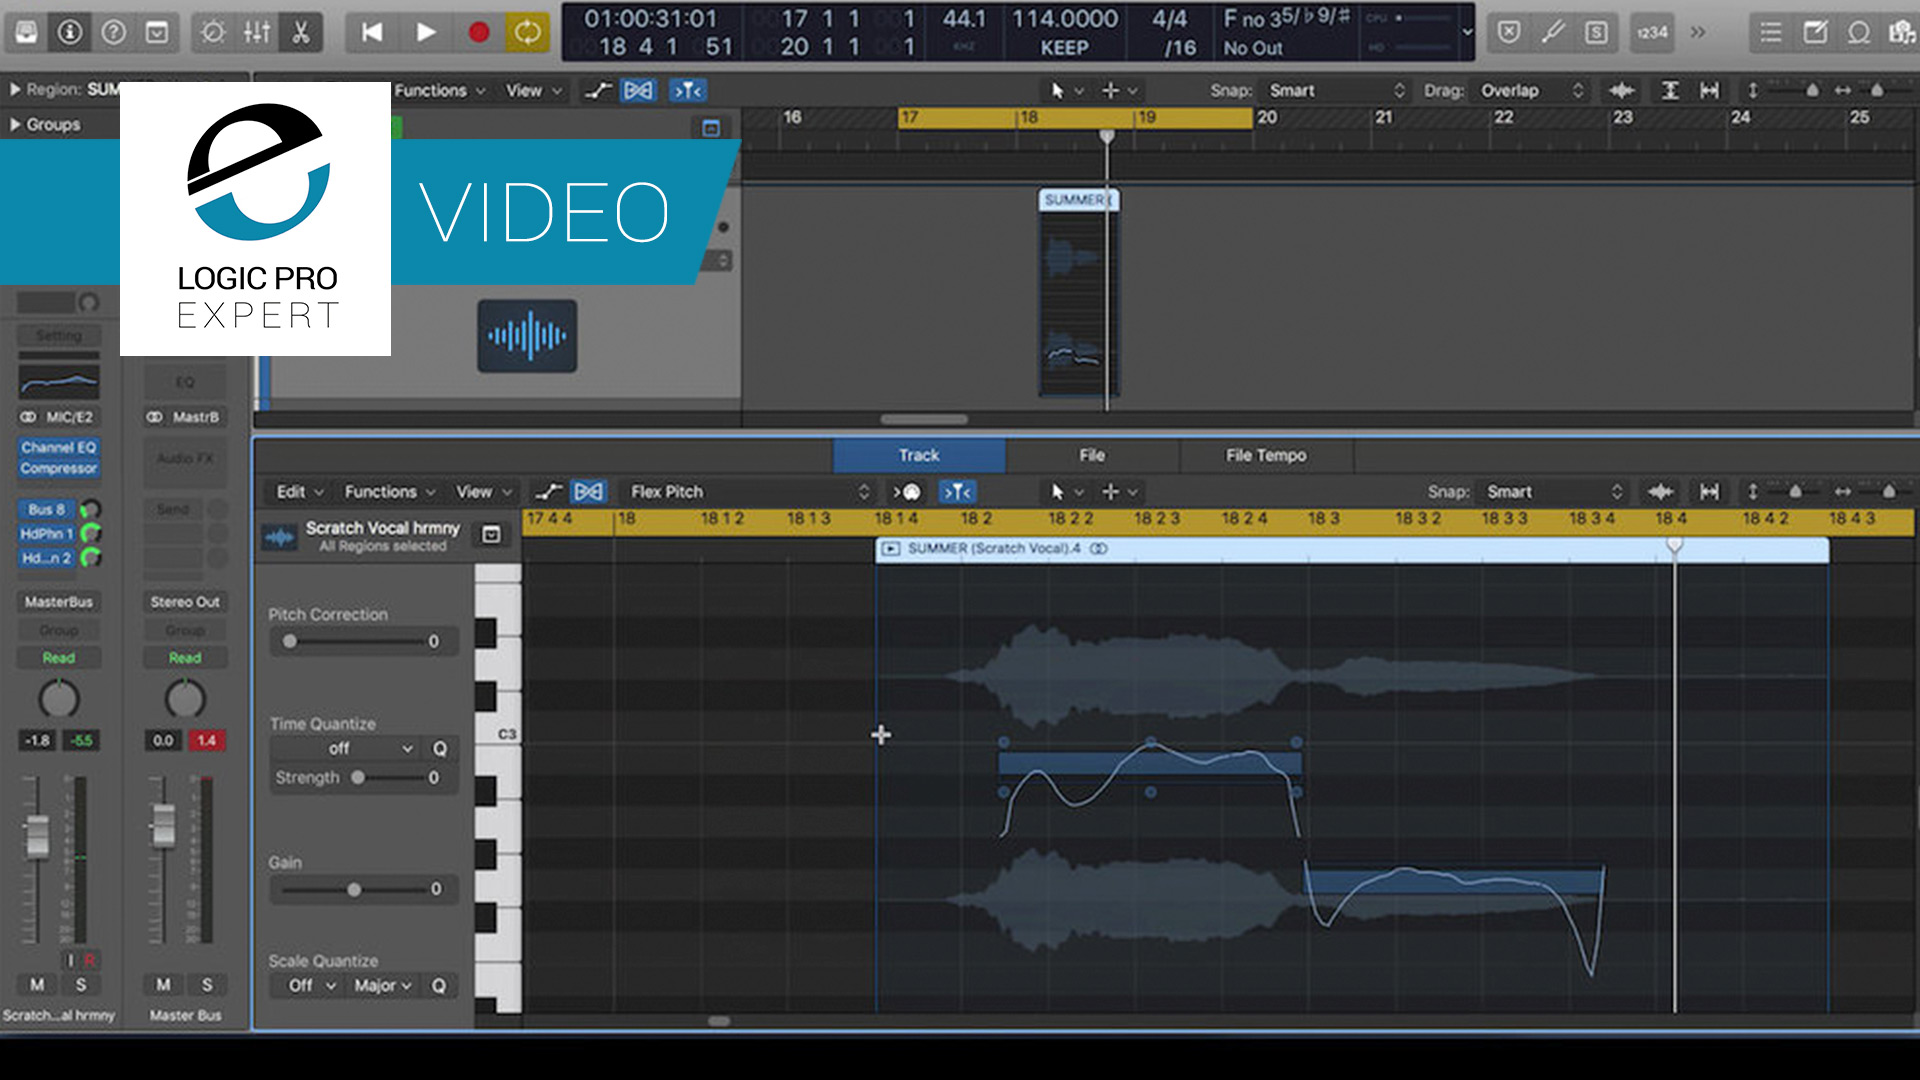 a screenshot of flex pitch in apple logic pro x